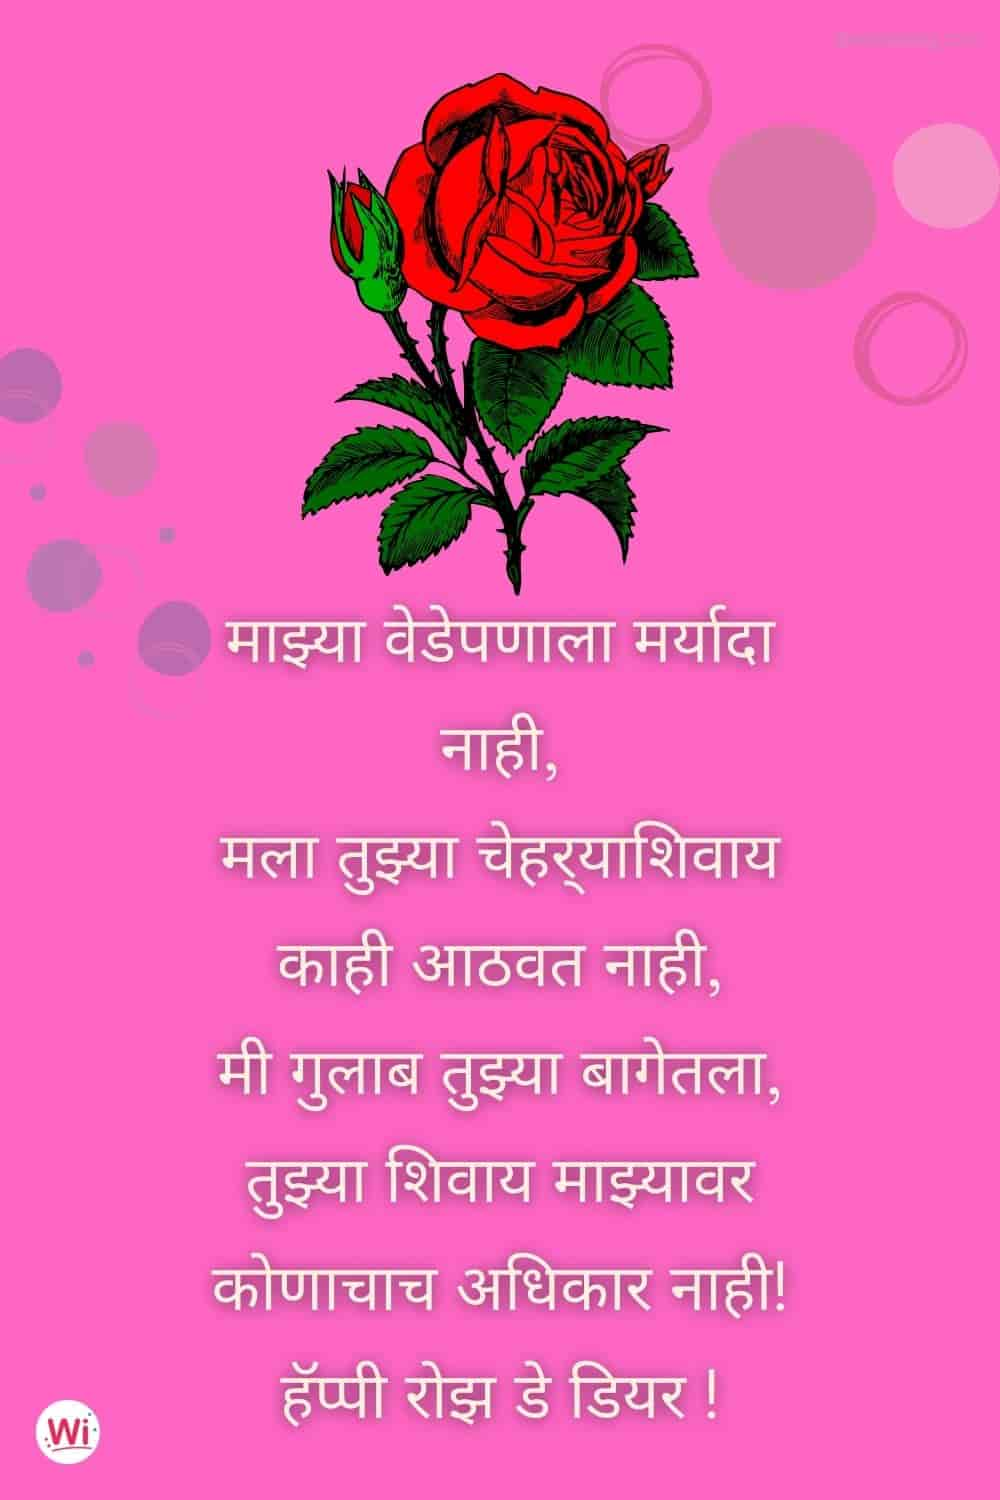 rose day messages for girlfriend in marathi